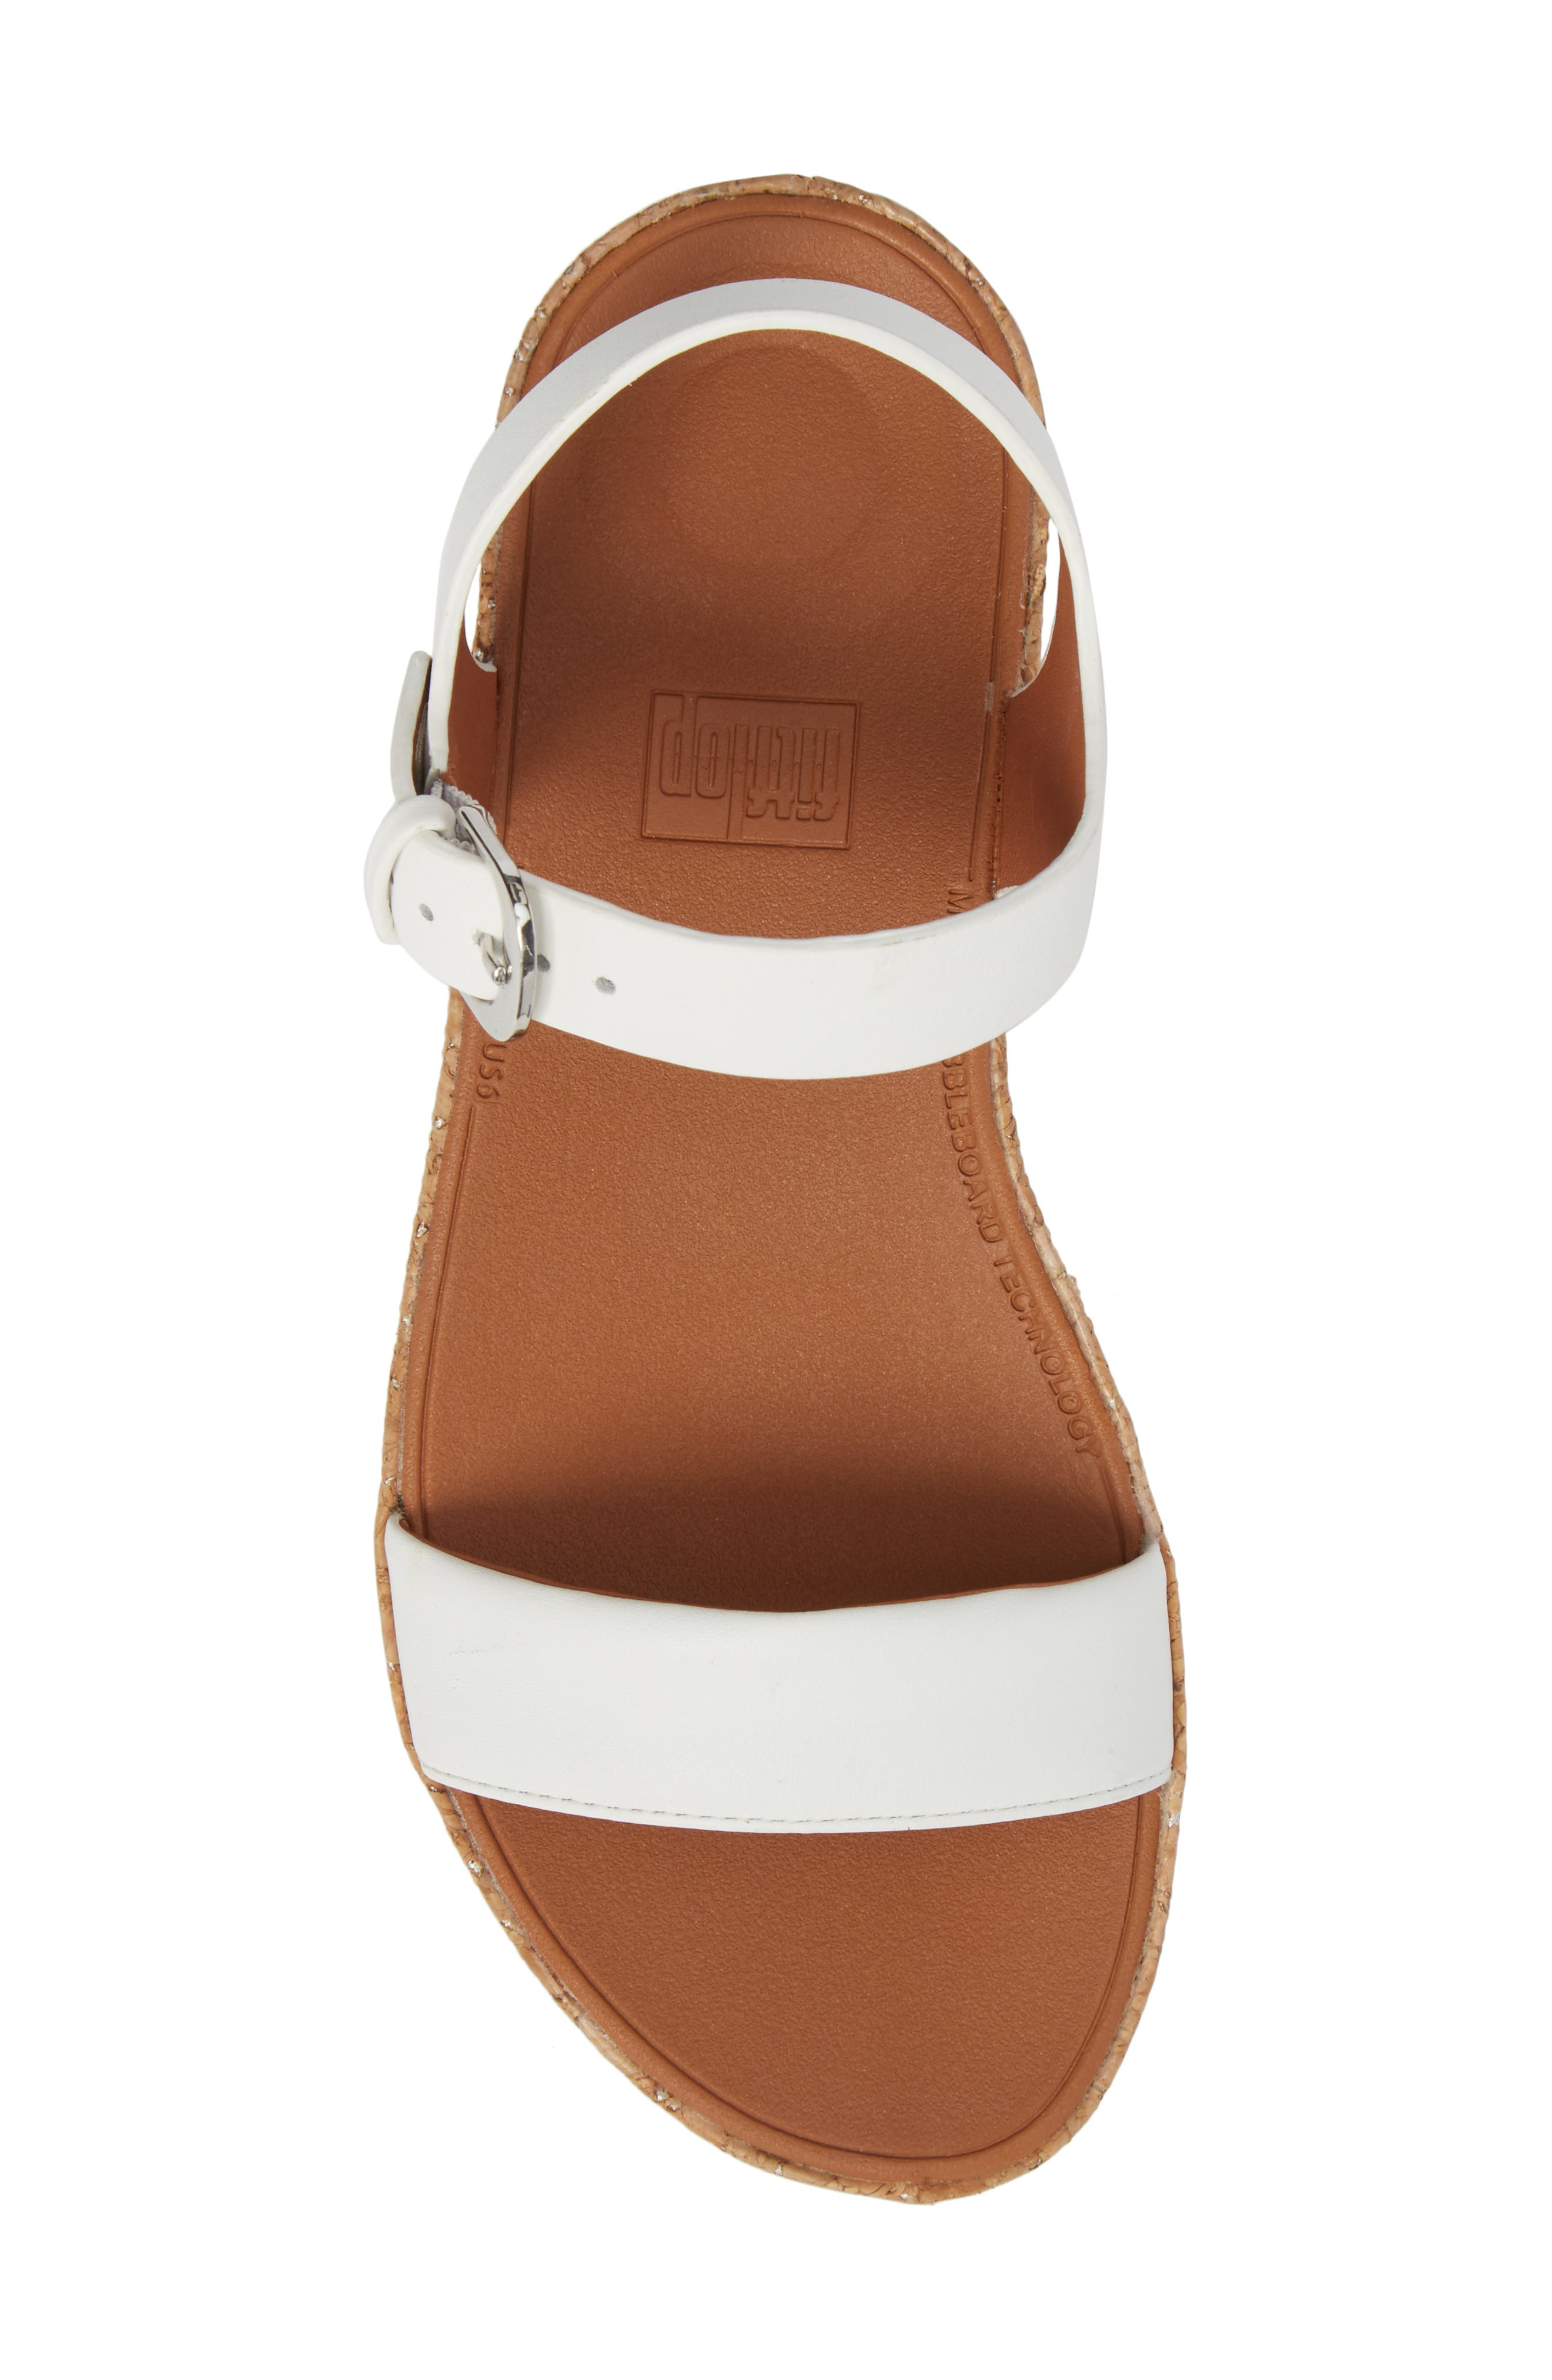 Bon II Platform Sandal,                             Alternate thumbnail 5, color,                             Urban White Leather